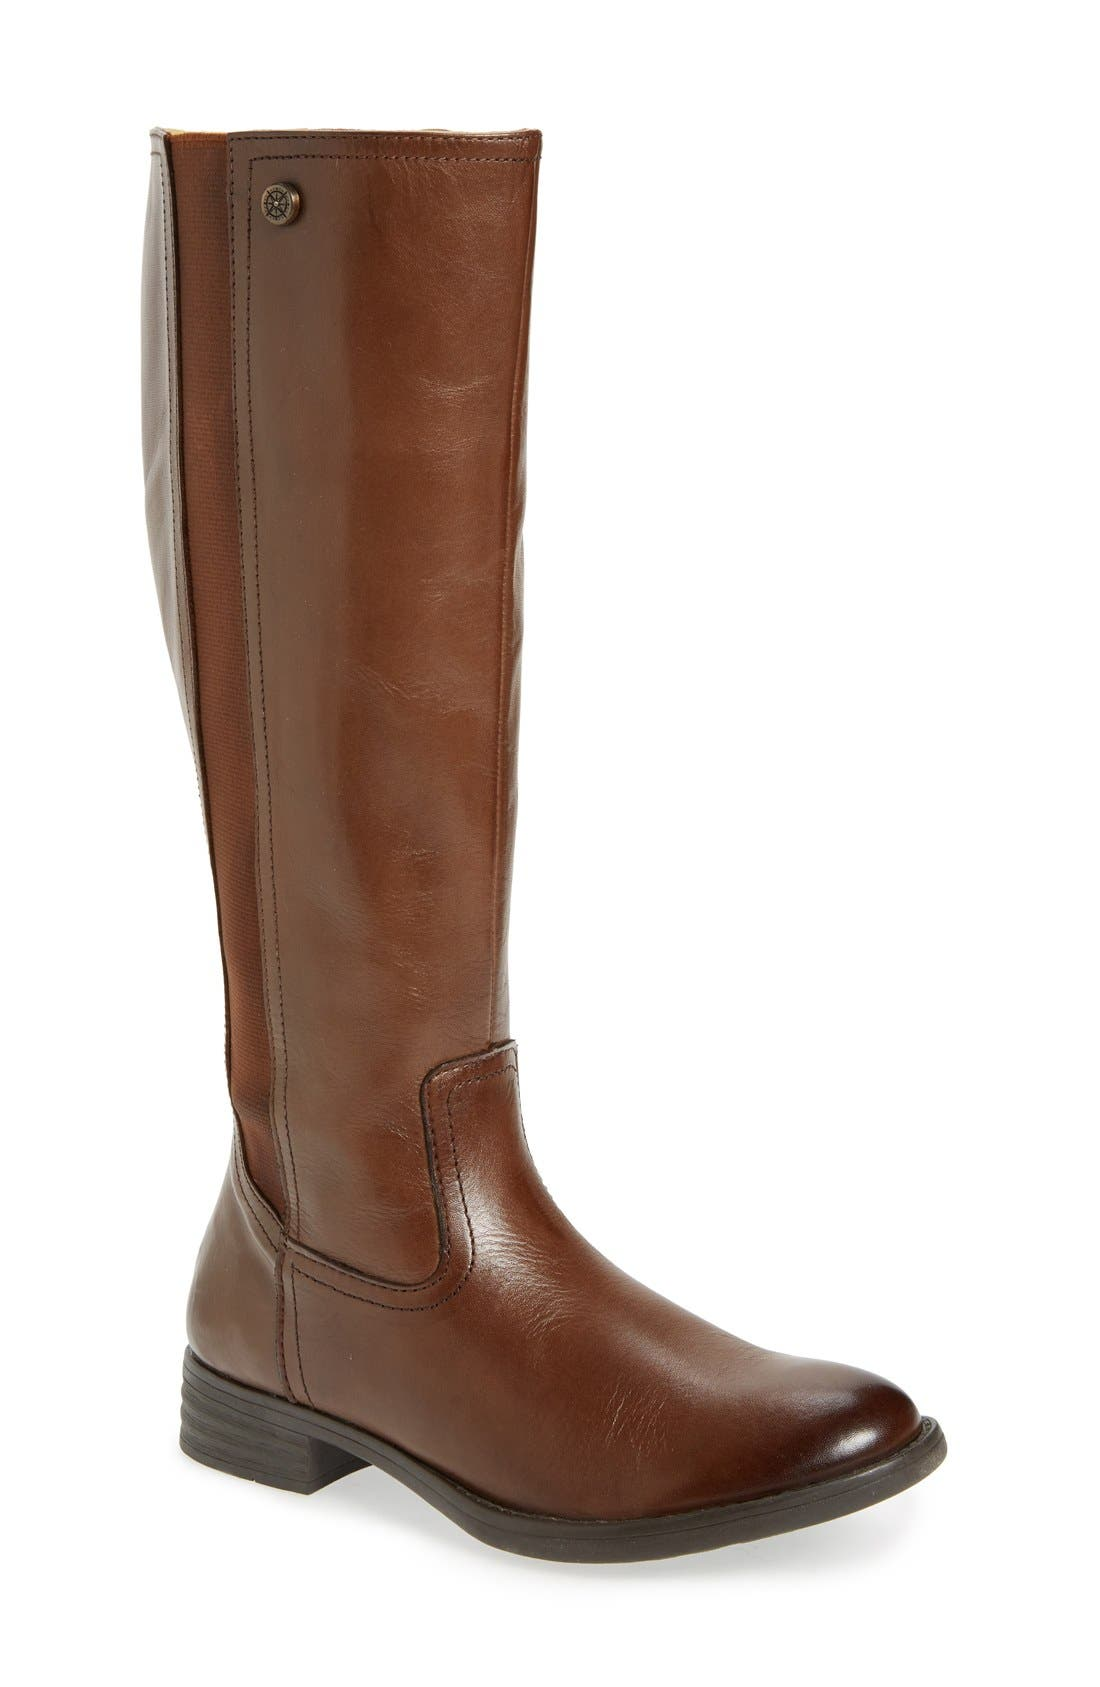 Alternate Image 1 Selected - Bussola 'Tanga' Riding Boot (Women)